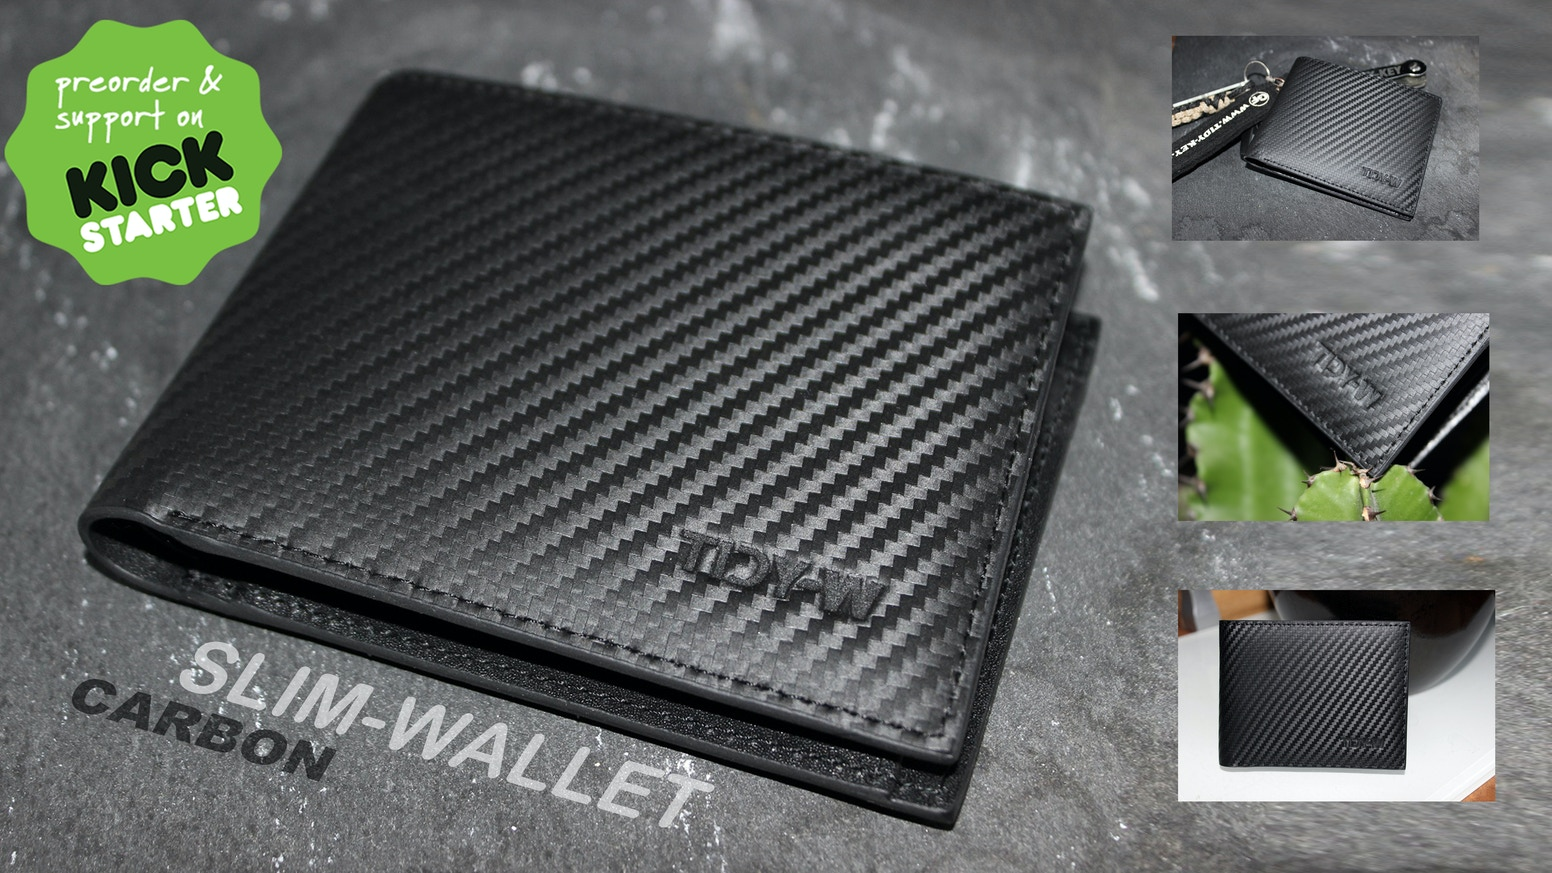 Carbon Leather Ultra Slim Wallet Designed For Minimalists By Eike